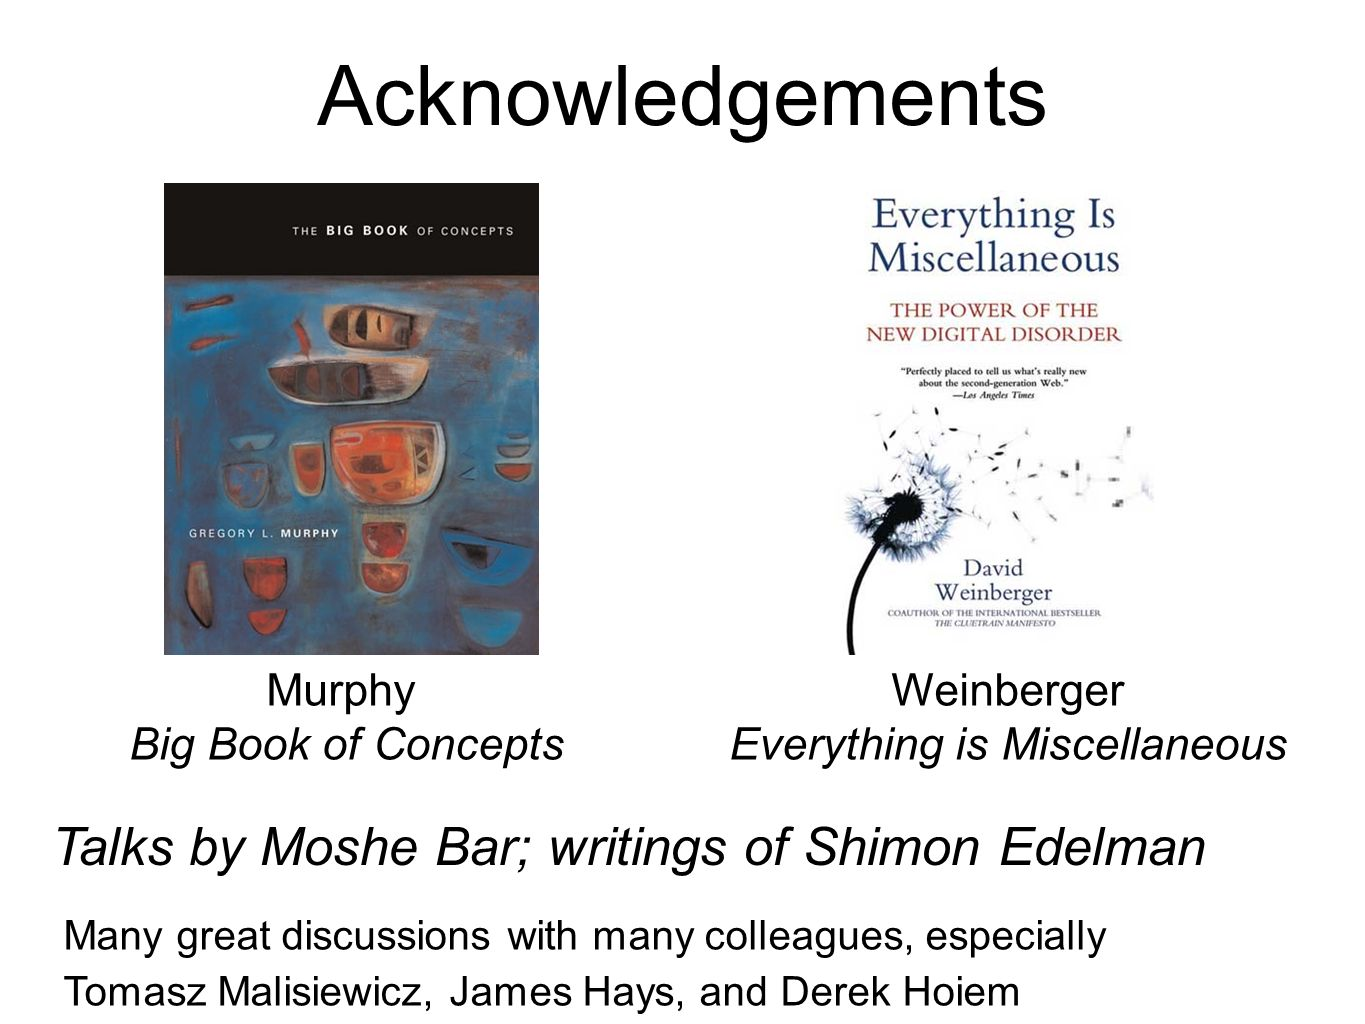 Acknowledgements Talks by Moshe Bar; writings of Shimon Edelman Murphy Big Book of Concepts Weinberger Everything is Miscellaneous Many great discussions with many colleagues, especially Tomasz Malisiewicz, James Hays, and Derek Hoiem